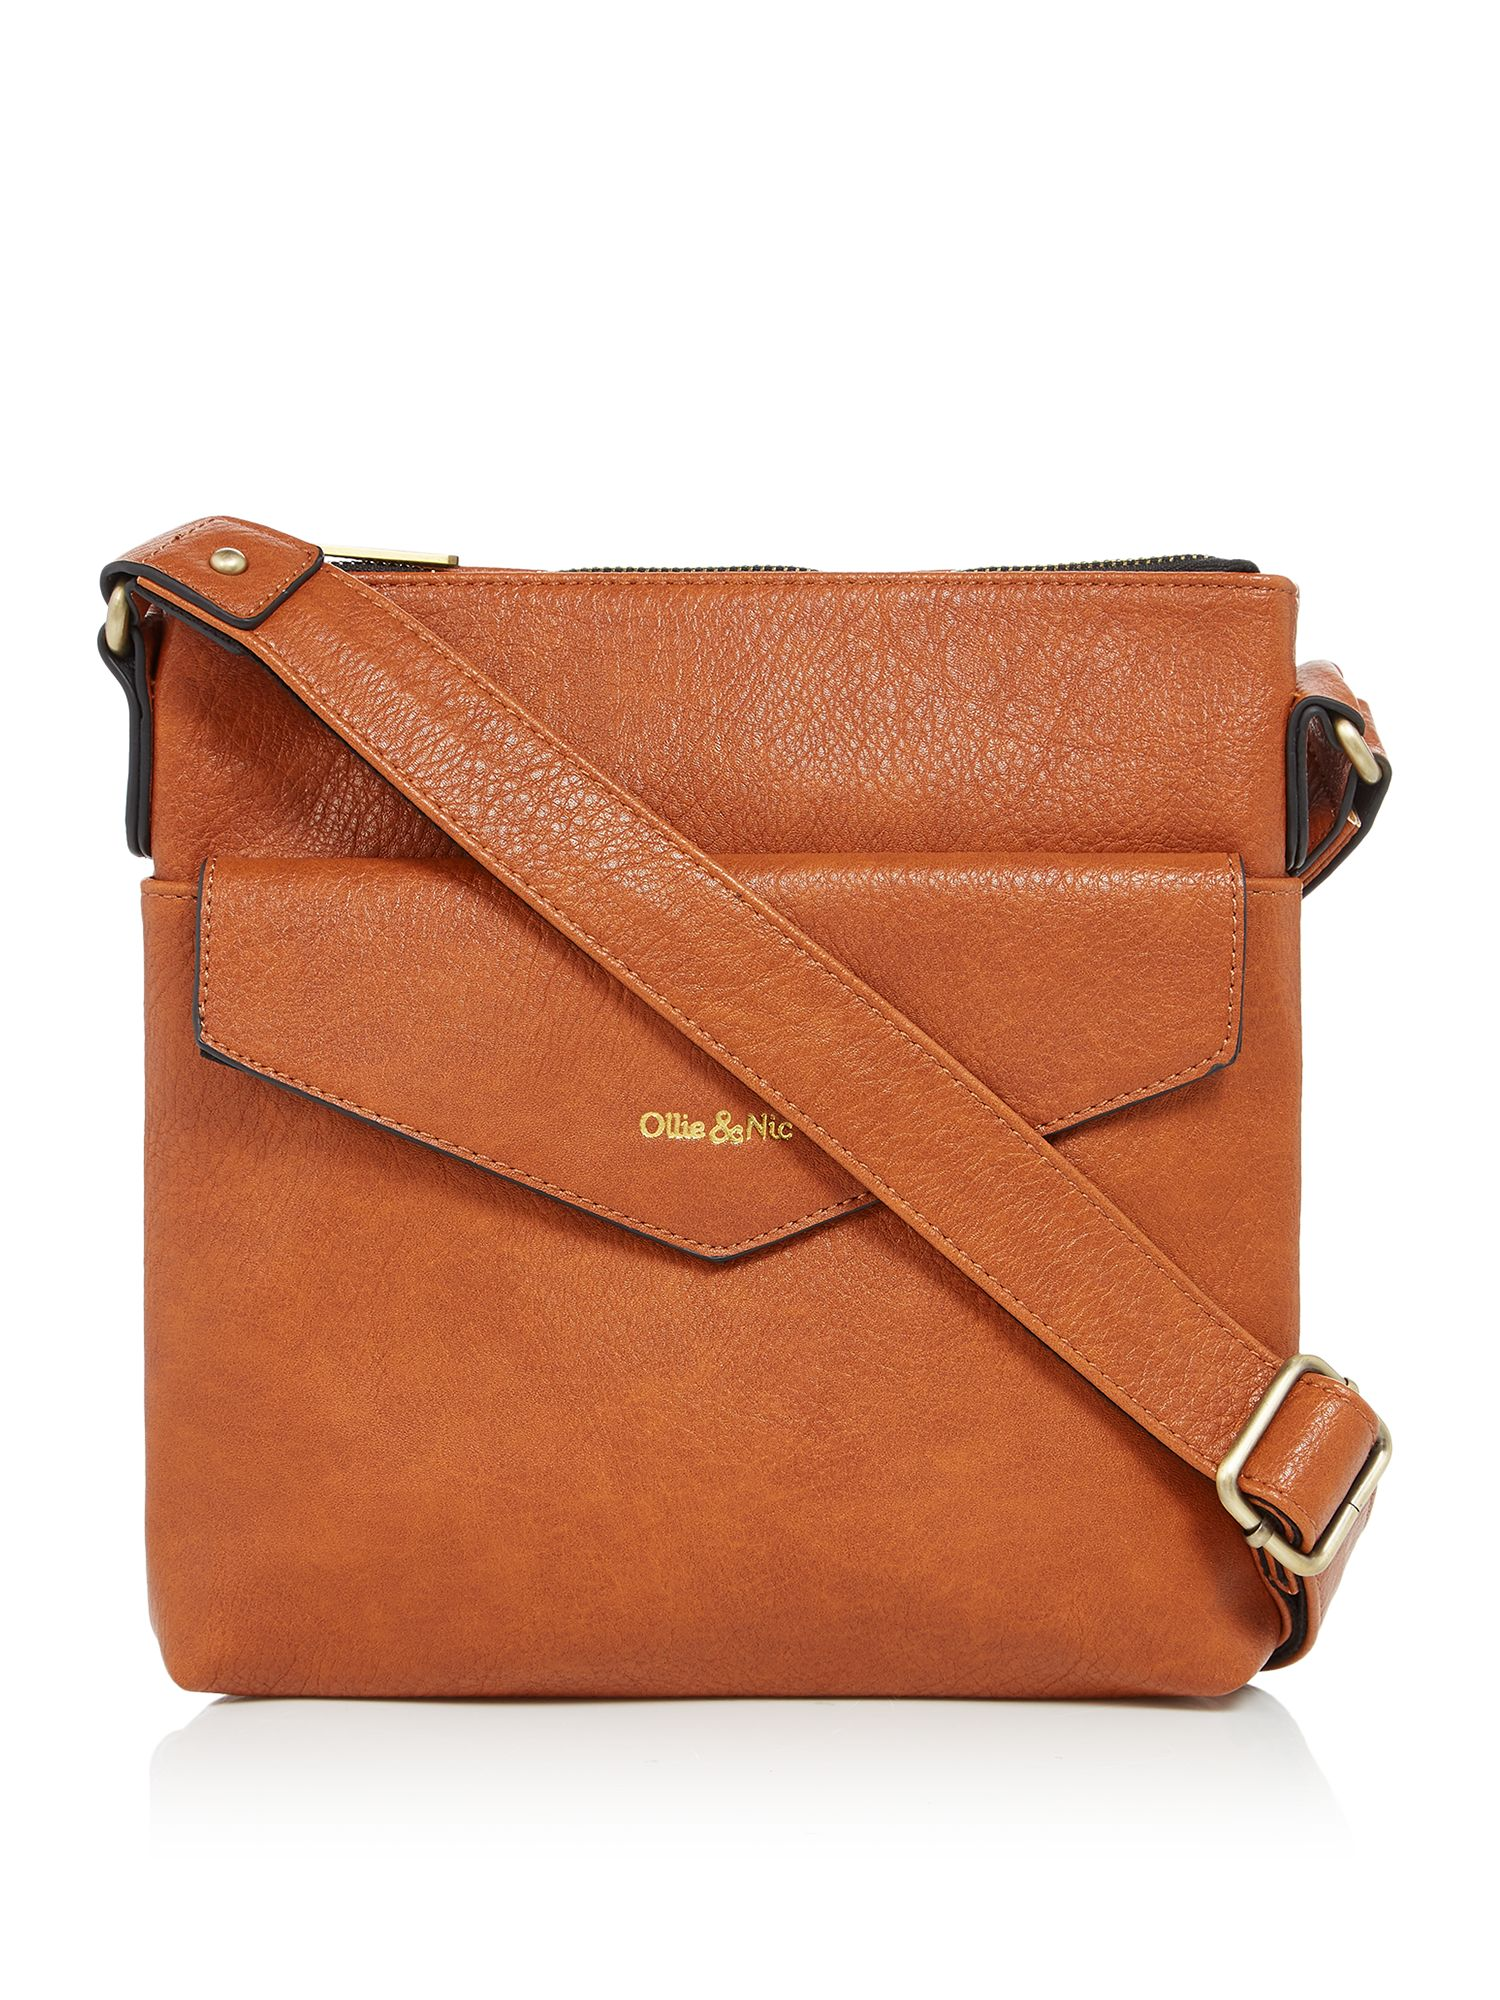 Ollie & Nic Eddy crossbody, Tan